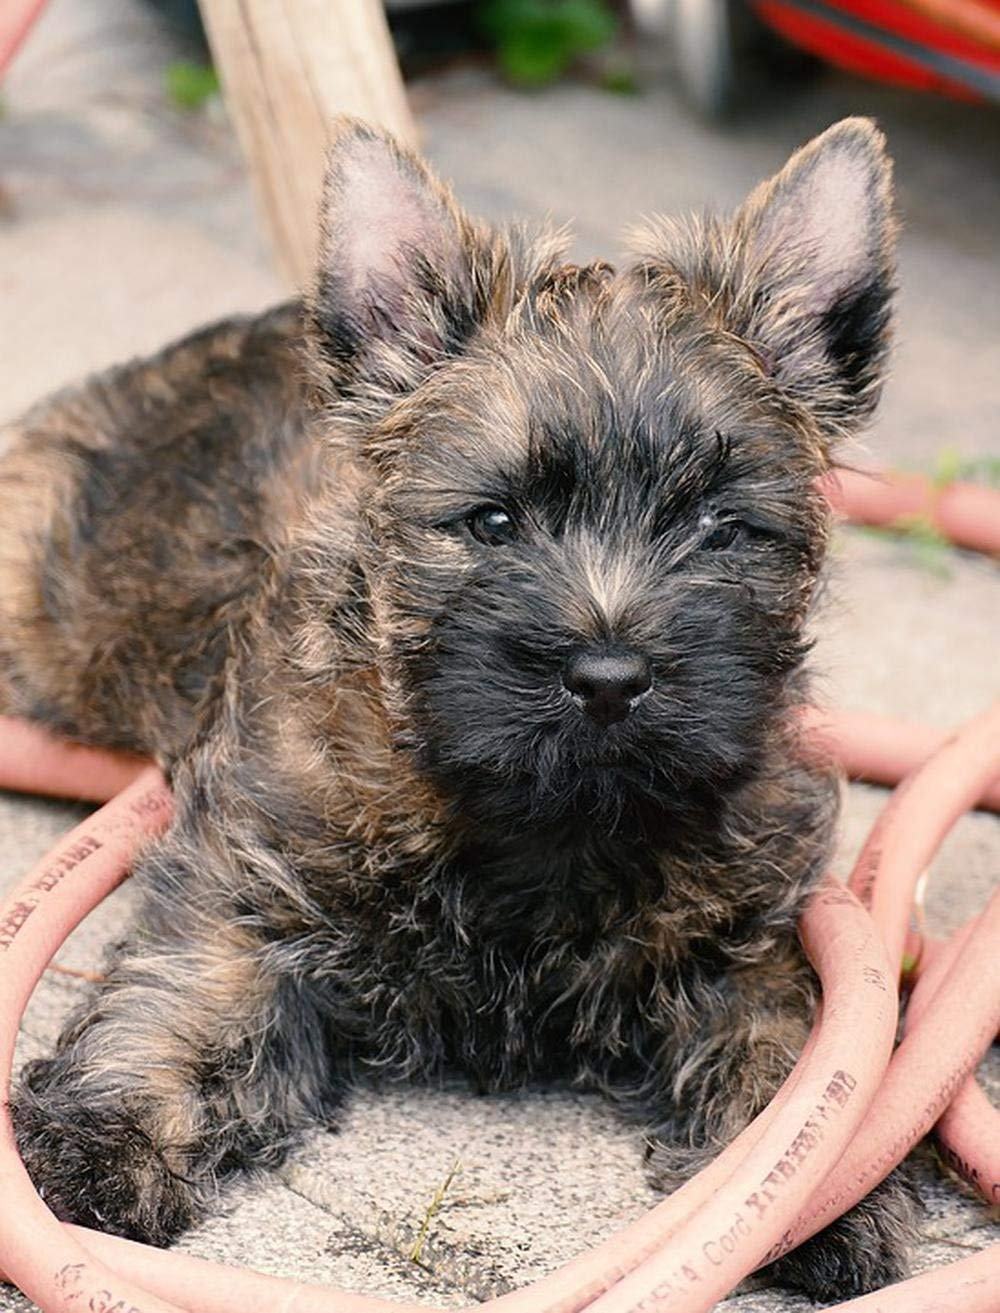 LAMINATED 24x31 inches POSTER: Puppy Cairn Terrier Terrier Garden Water Hose Animal Small Dog Cute Young Dog Animal Portrait Quadruped Snout Hundeportrait Attention Sweet Learn Pet Healthy